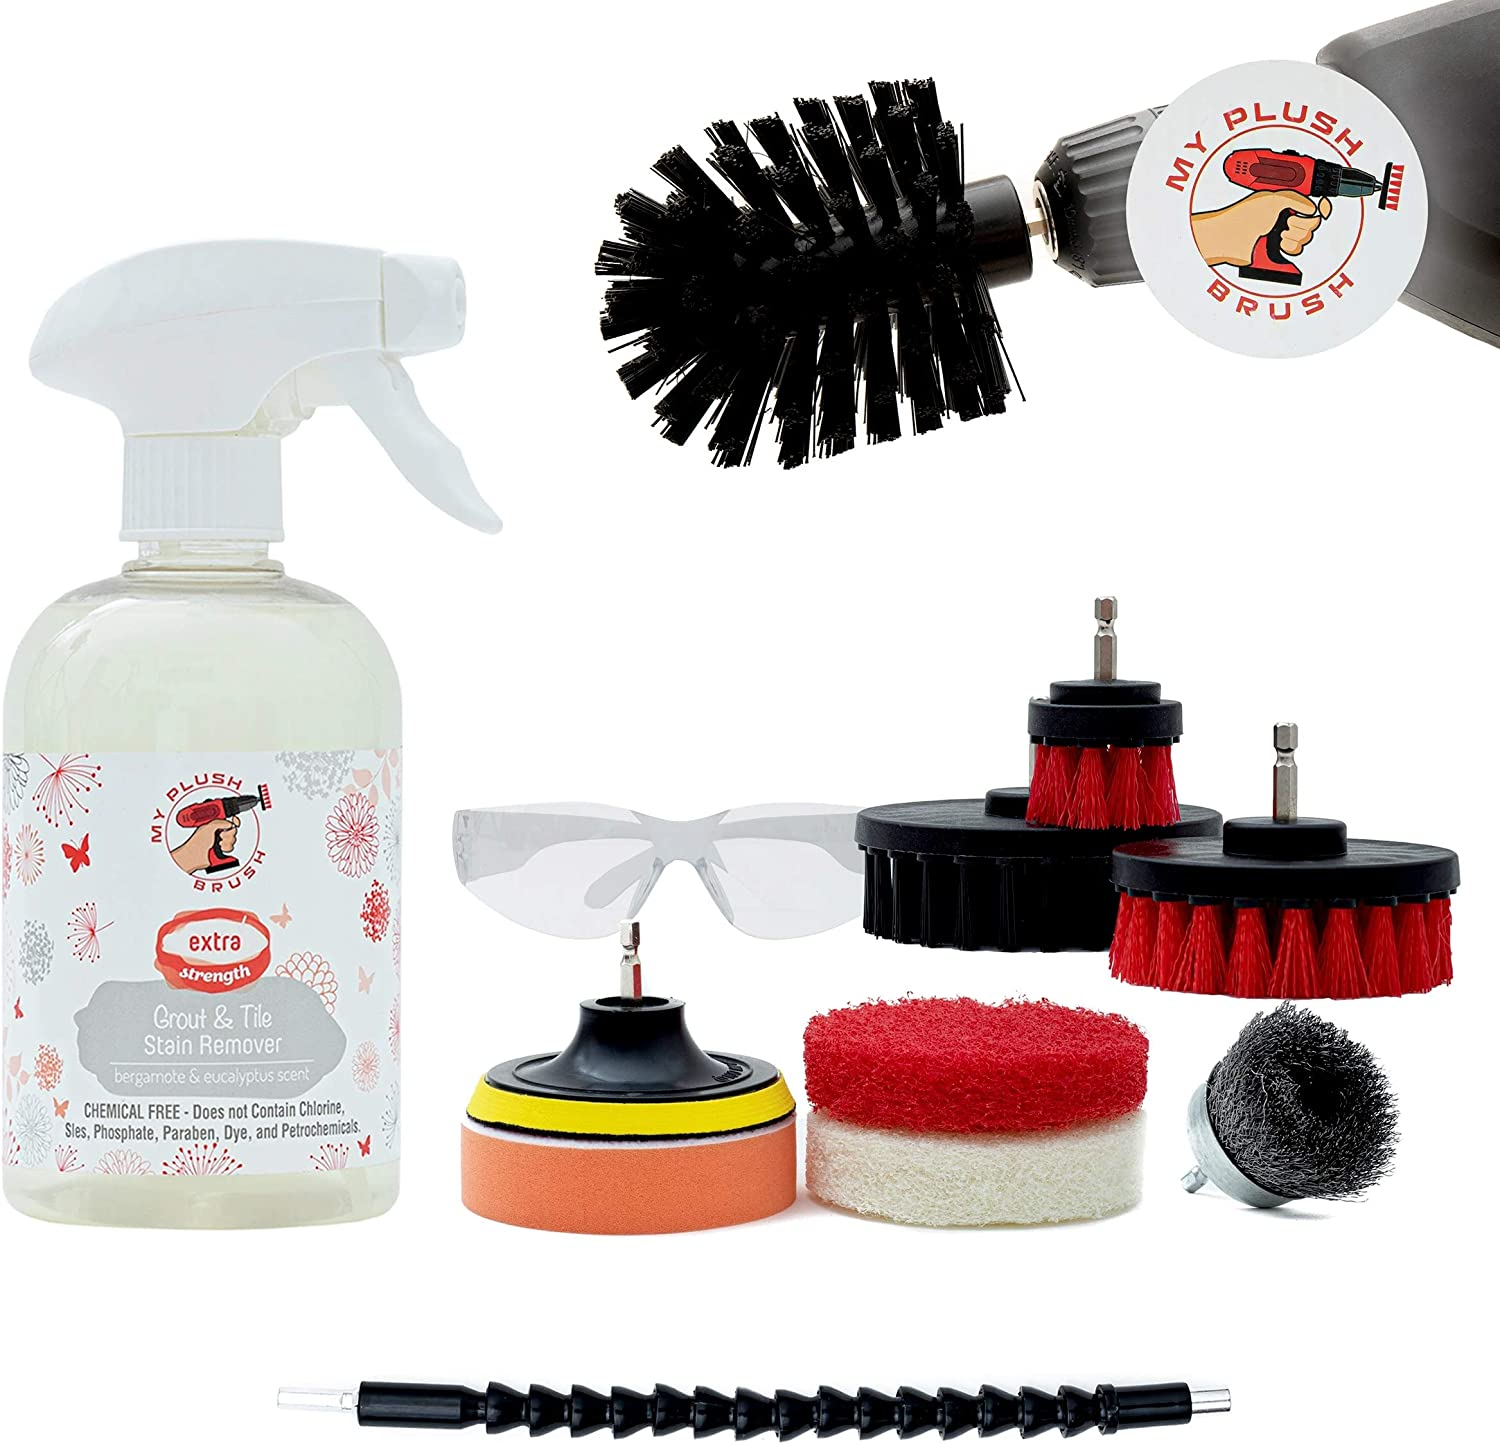 Heavy Duty Drill Brush Kit-Power Scrubber Cleaning Set For Shower Tile, Carpet, Brick, Grout, Kitchen, Grill, Bathroom, Car Detailing-Rims cleaner scrub [Extended Reach Attachment & Stain Remover]